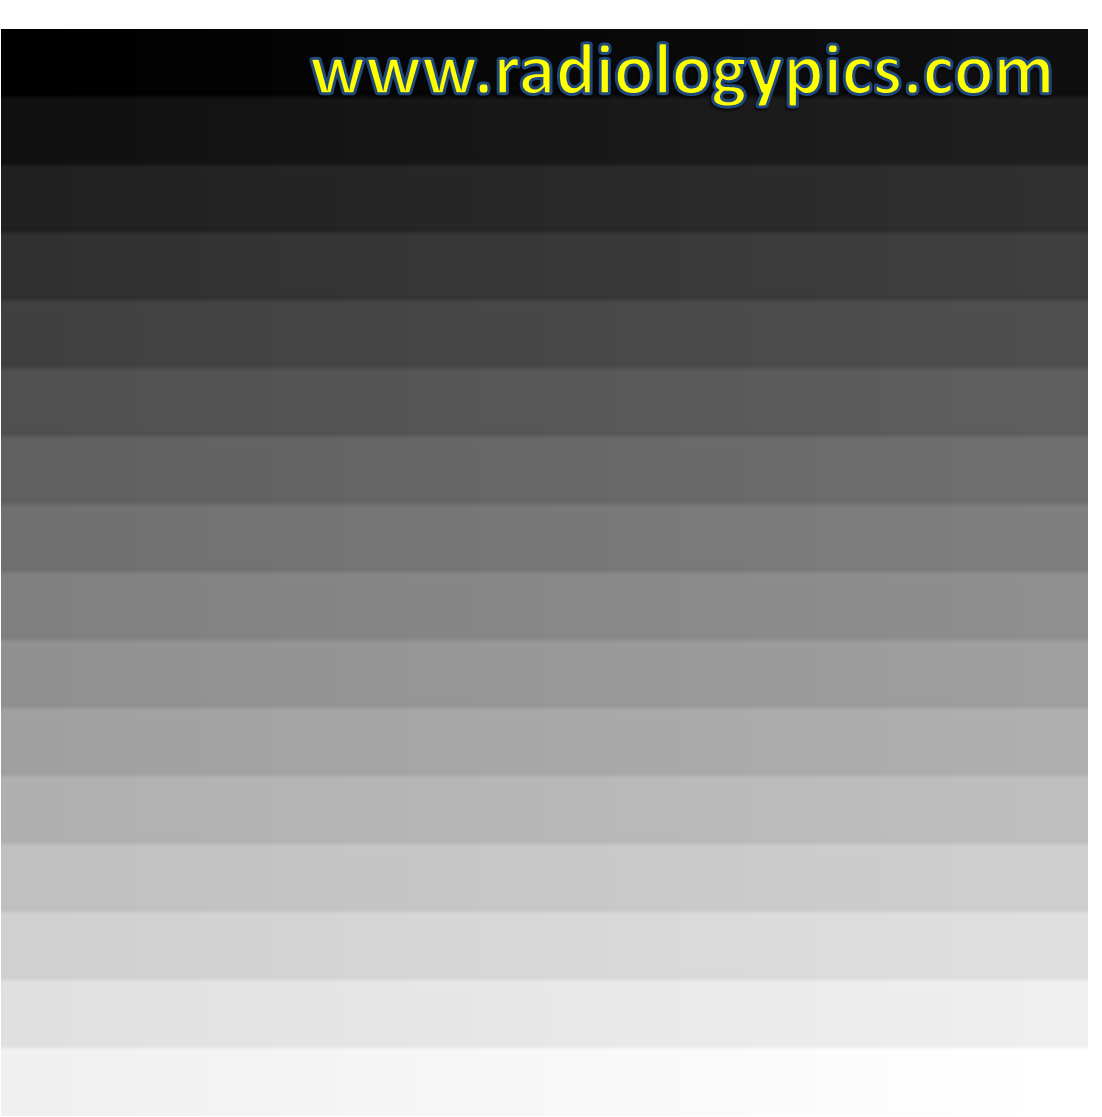 Gray Shades 256 shades of gray – explanation of grayscale | radiologypics